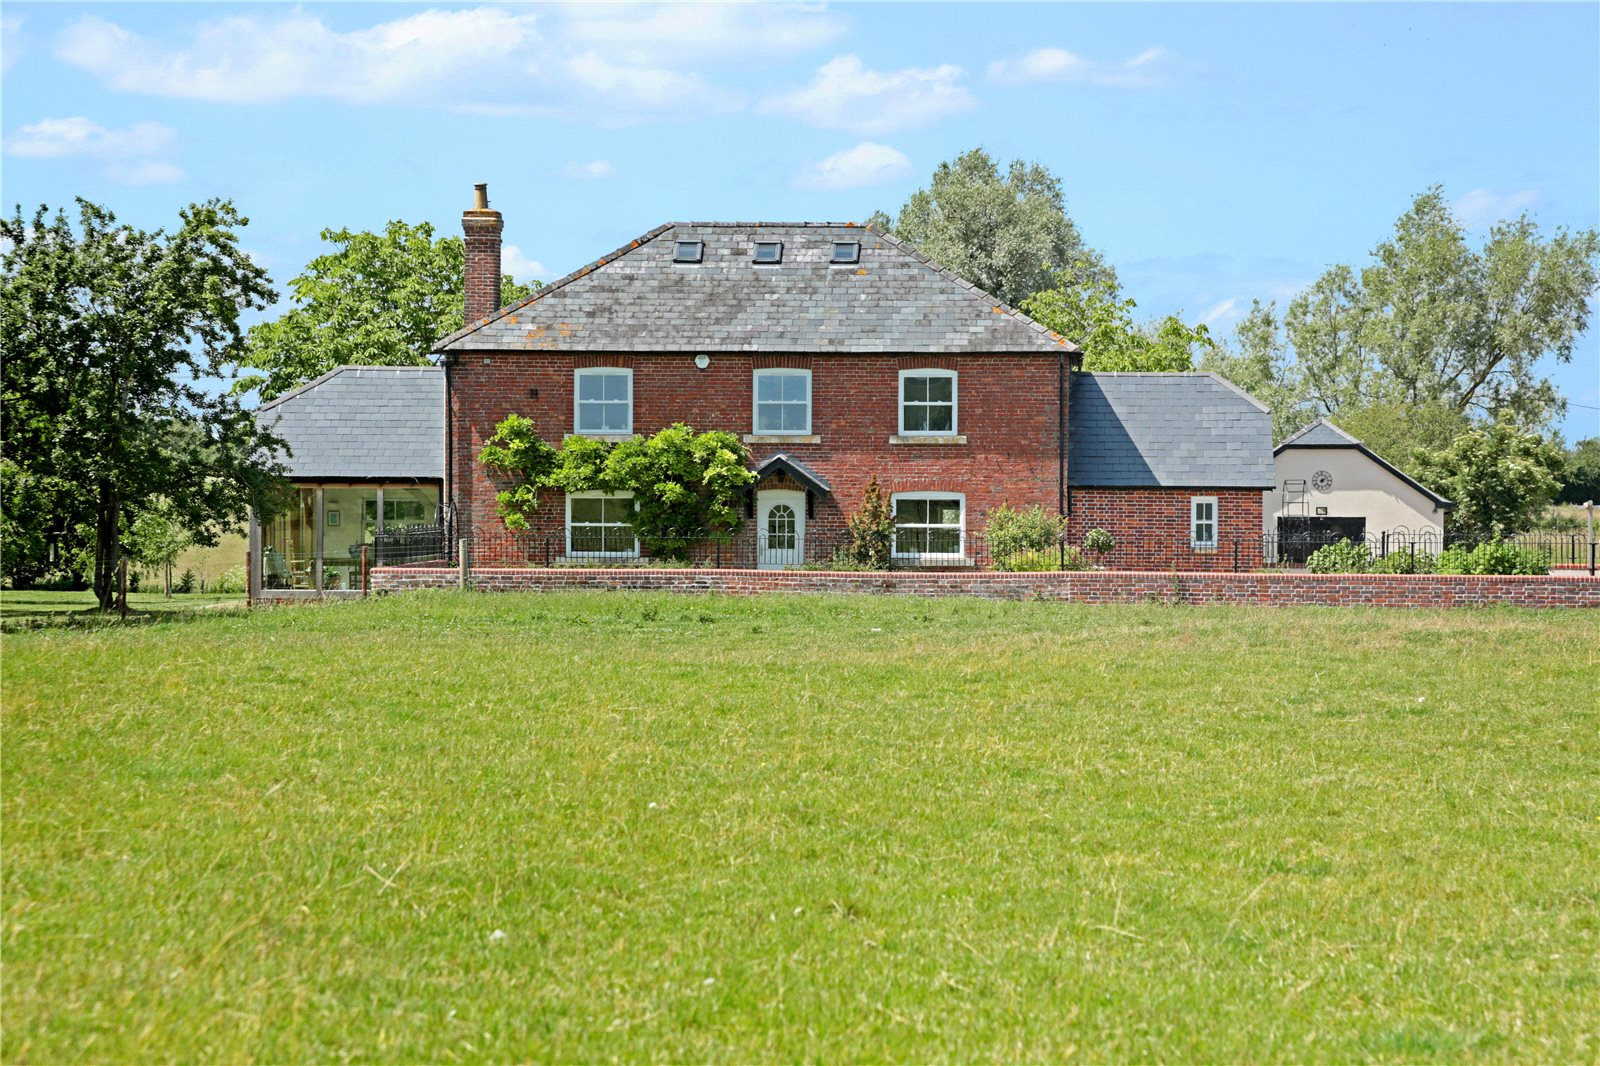 Частный дом для того Продажа на Thornhill, Royal Wootton Bassett, Swindon, Wiltshire, SN4 Swindon, Англия